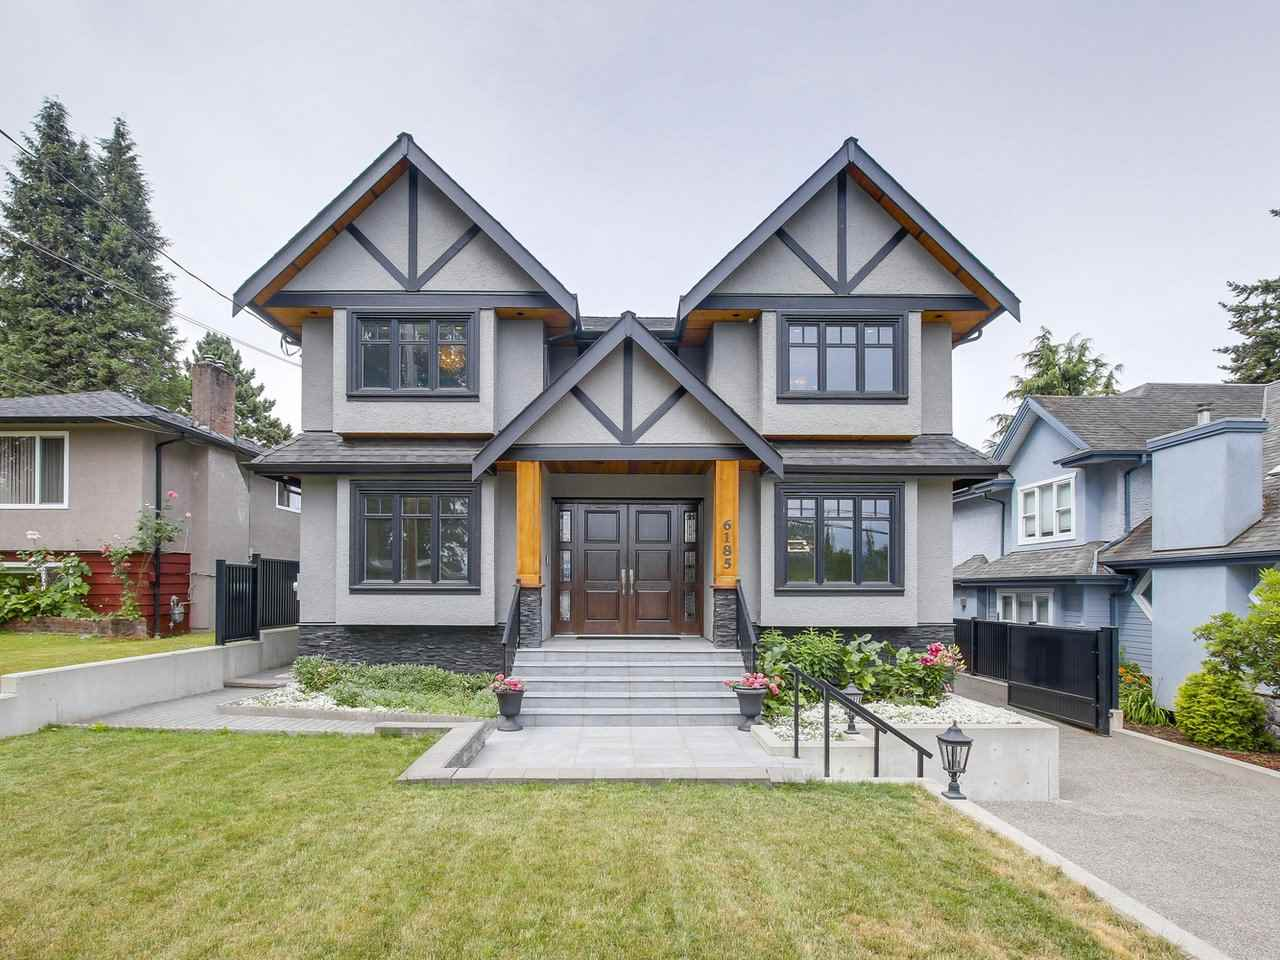 Detached at 6185 6TH STREET, Burnaby South, British Columbia. Image 1